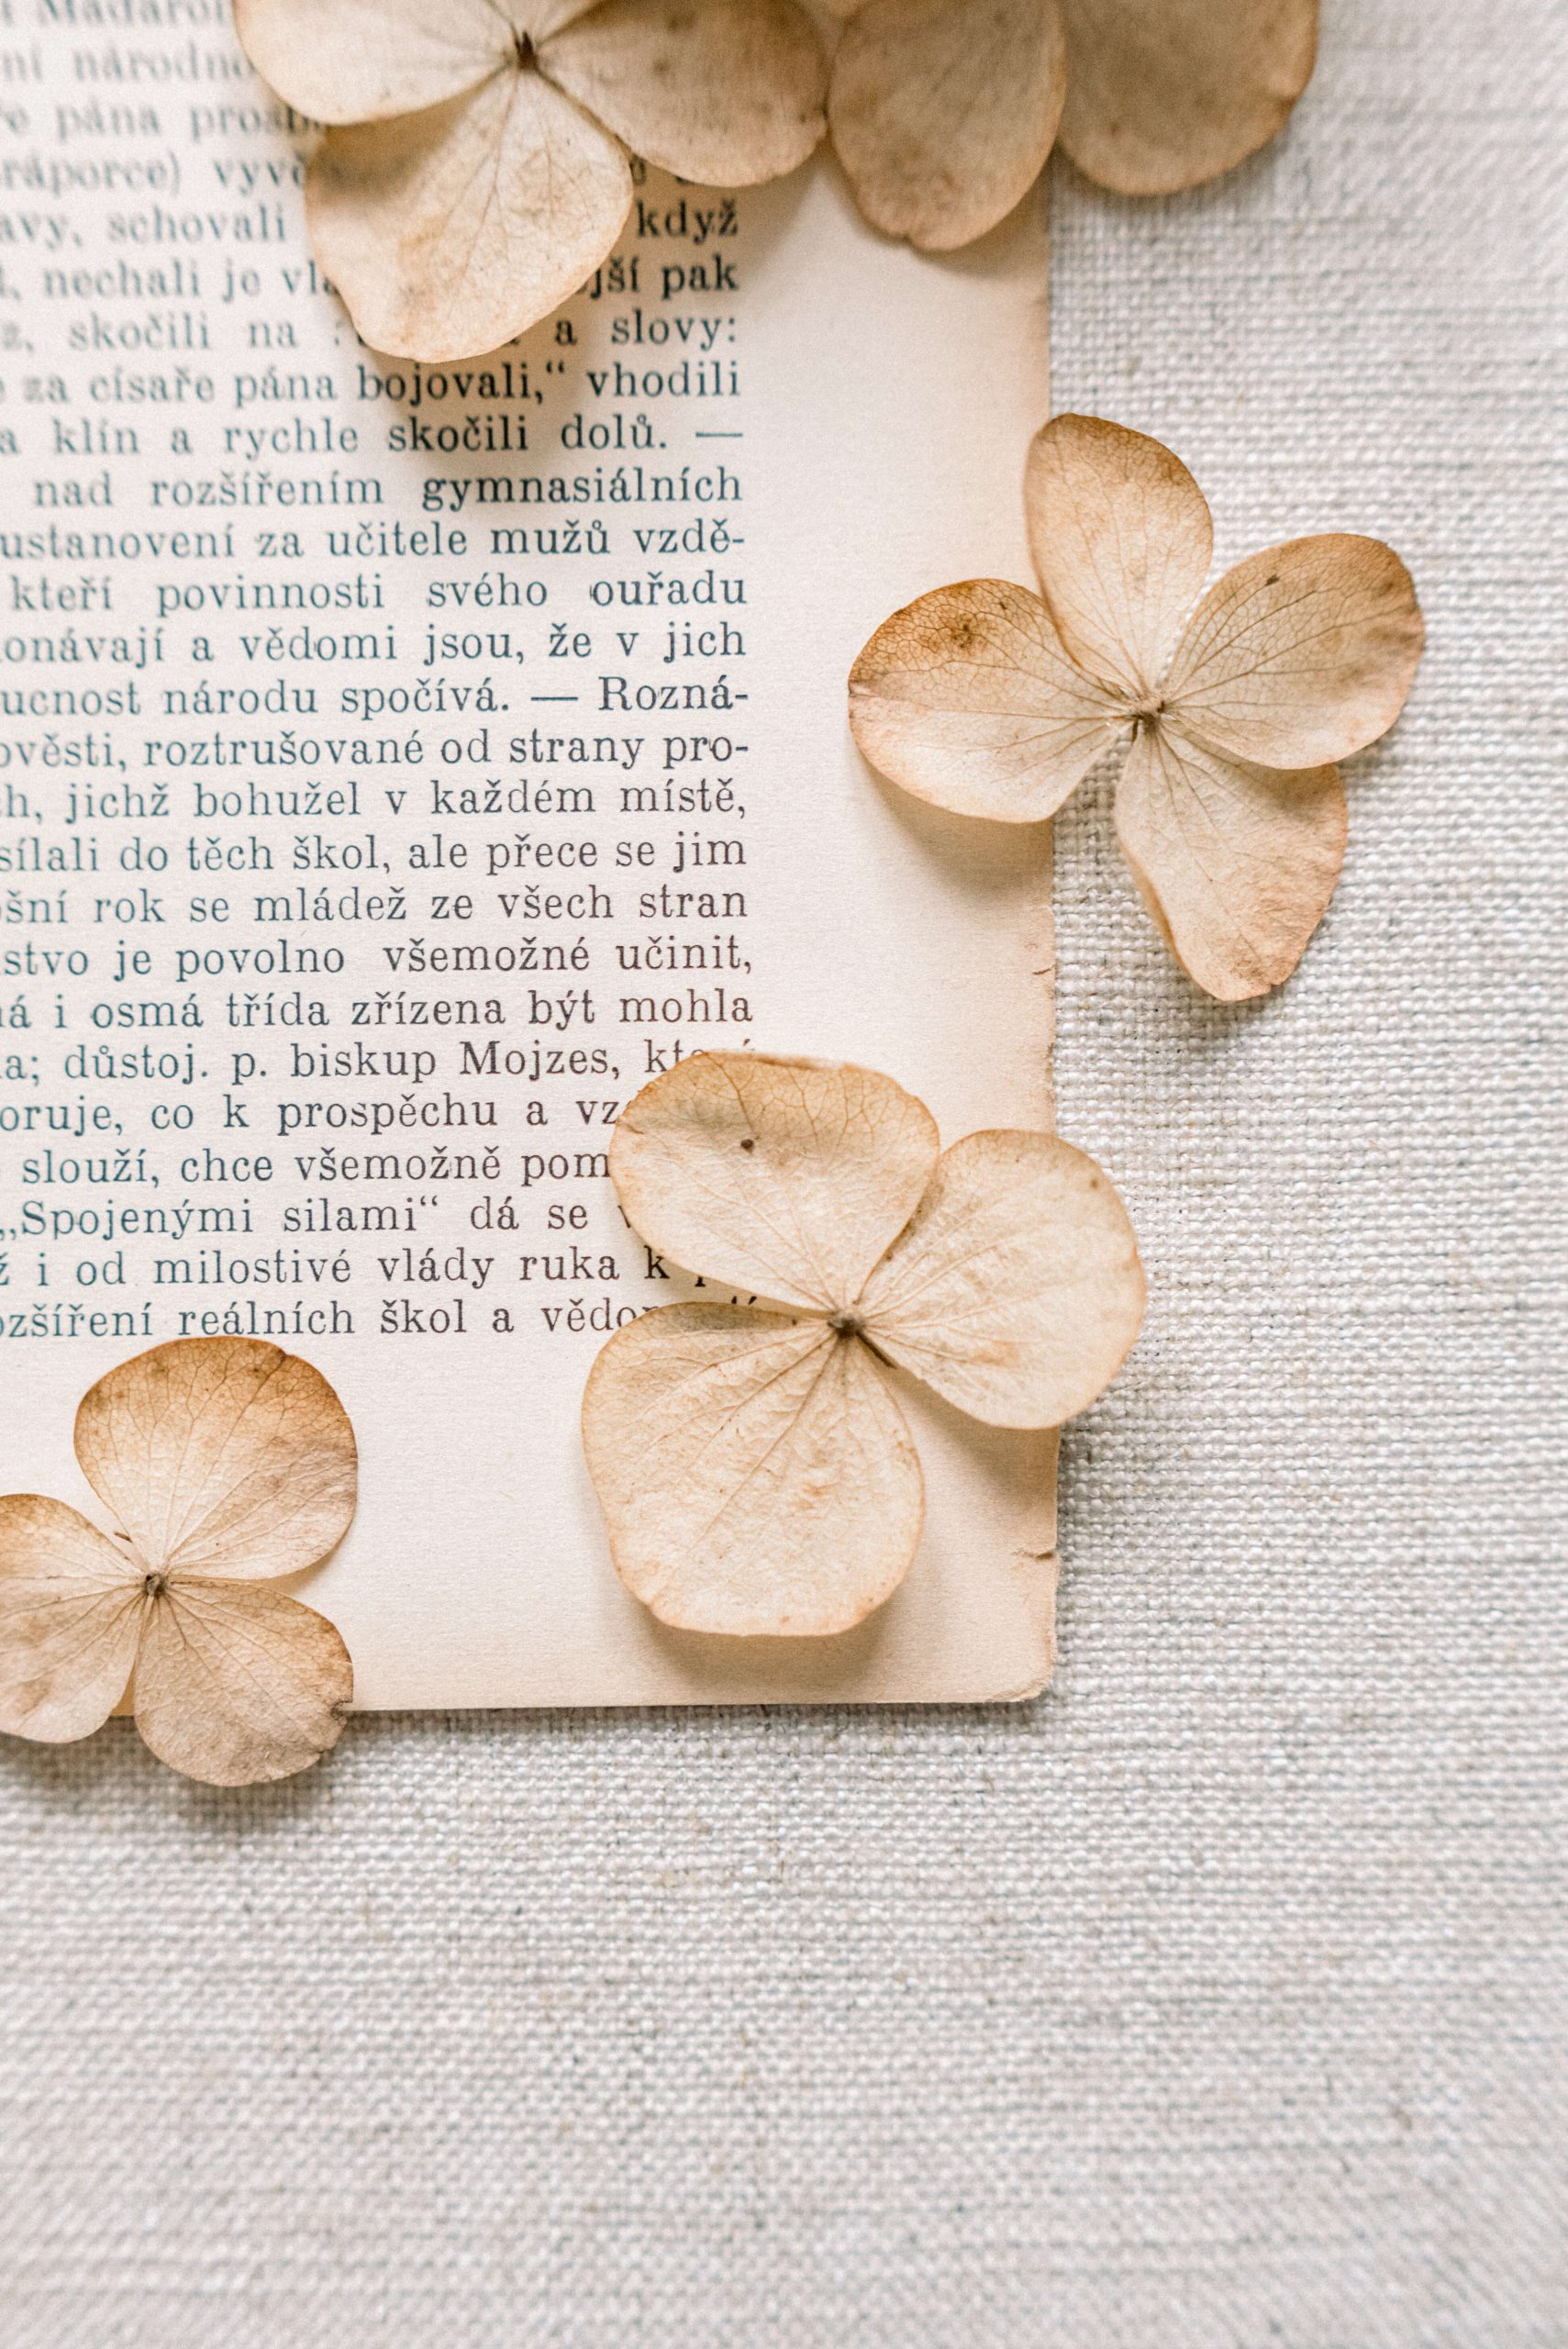 old page of antique book with dried hydrangea flowers, linen styling flatlay board. Photo by Cristina Ilao www.cristinailao.com